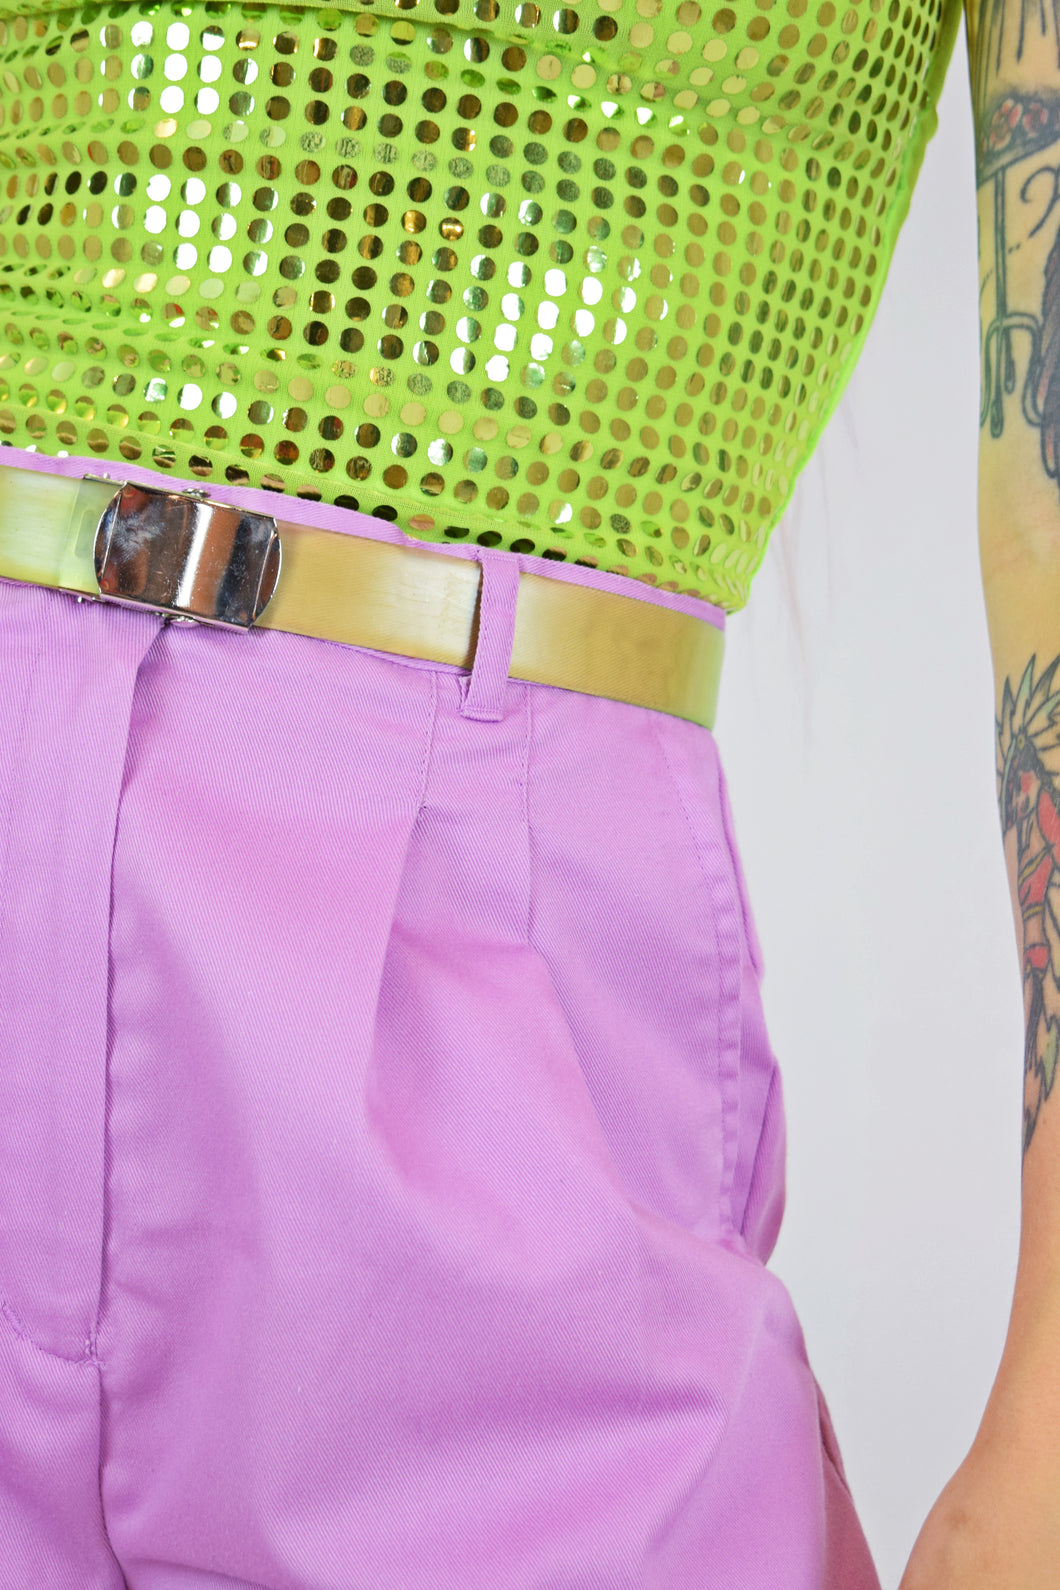 Y2K LIME DISCO HALTER - XS